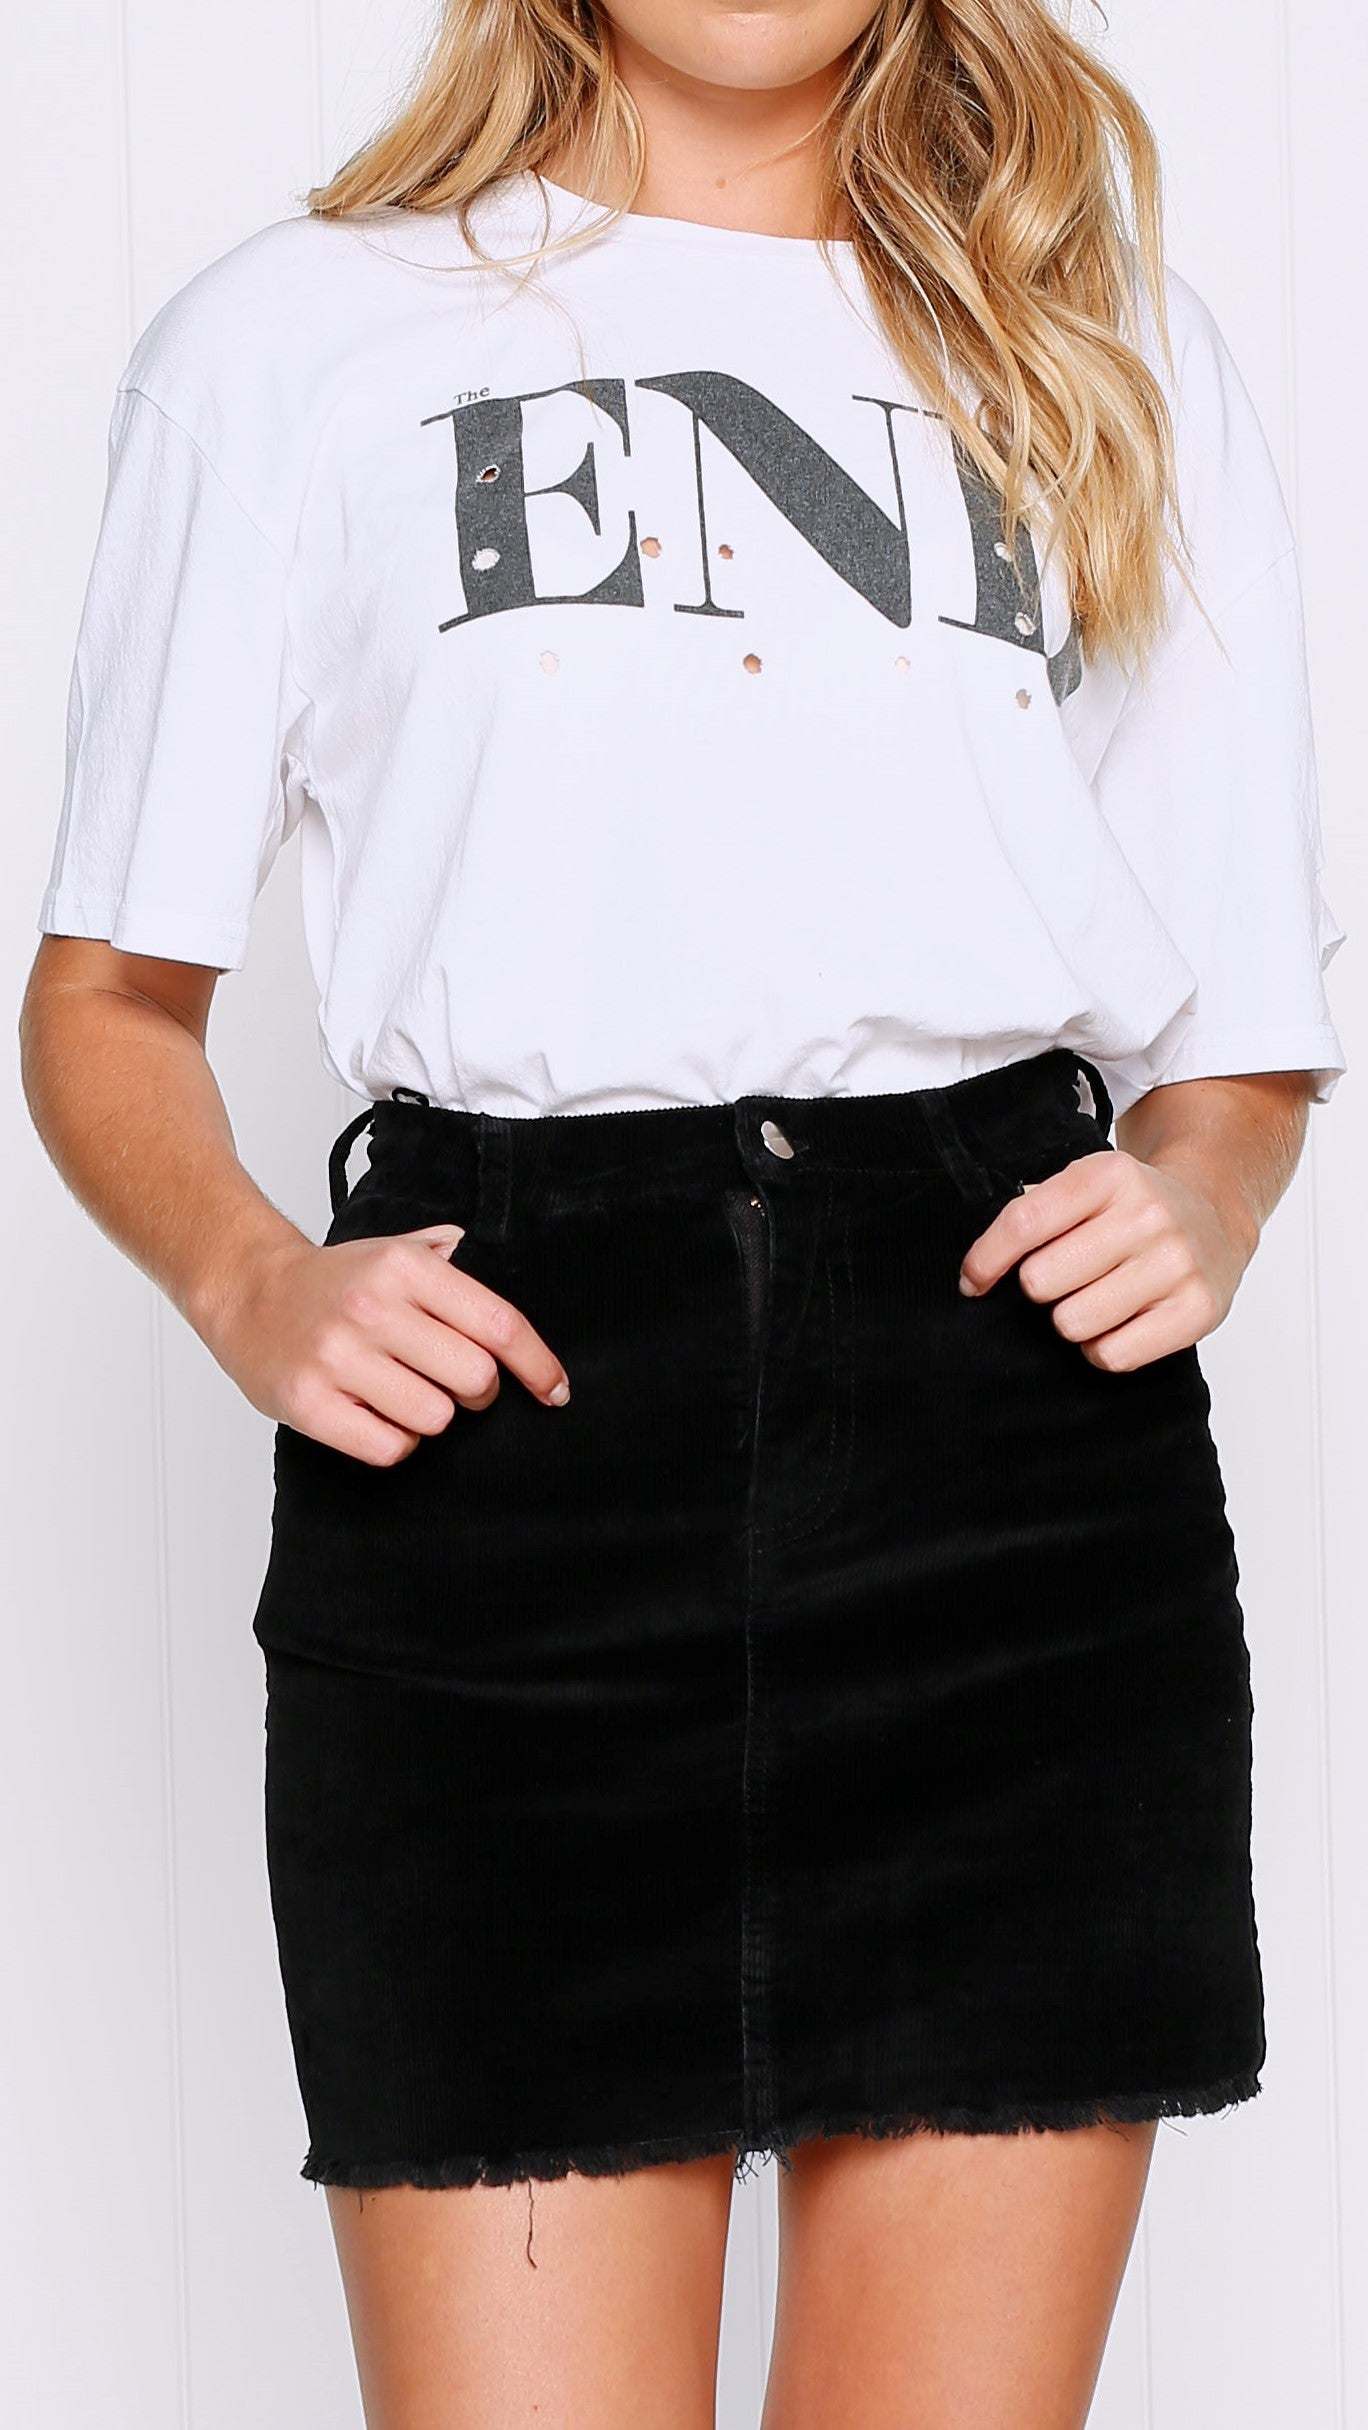 Dallas Skirt - Black